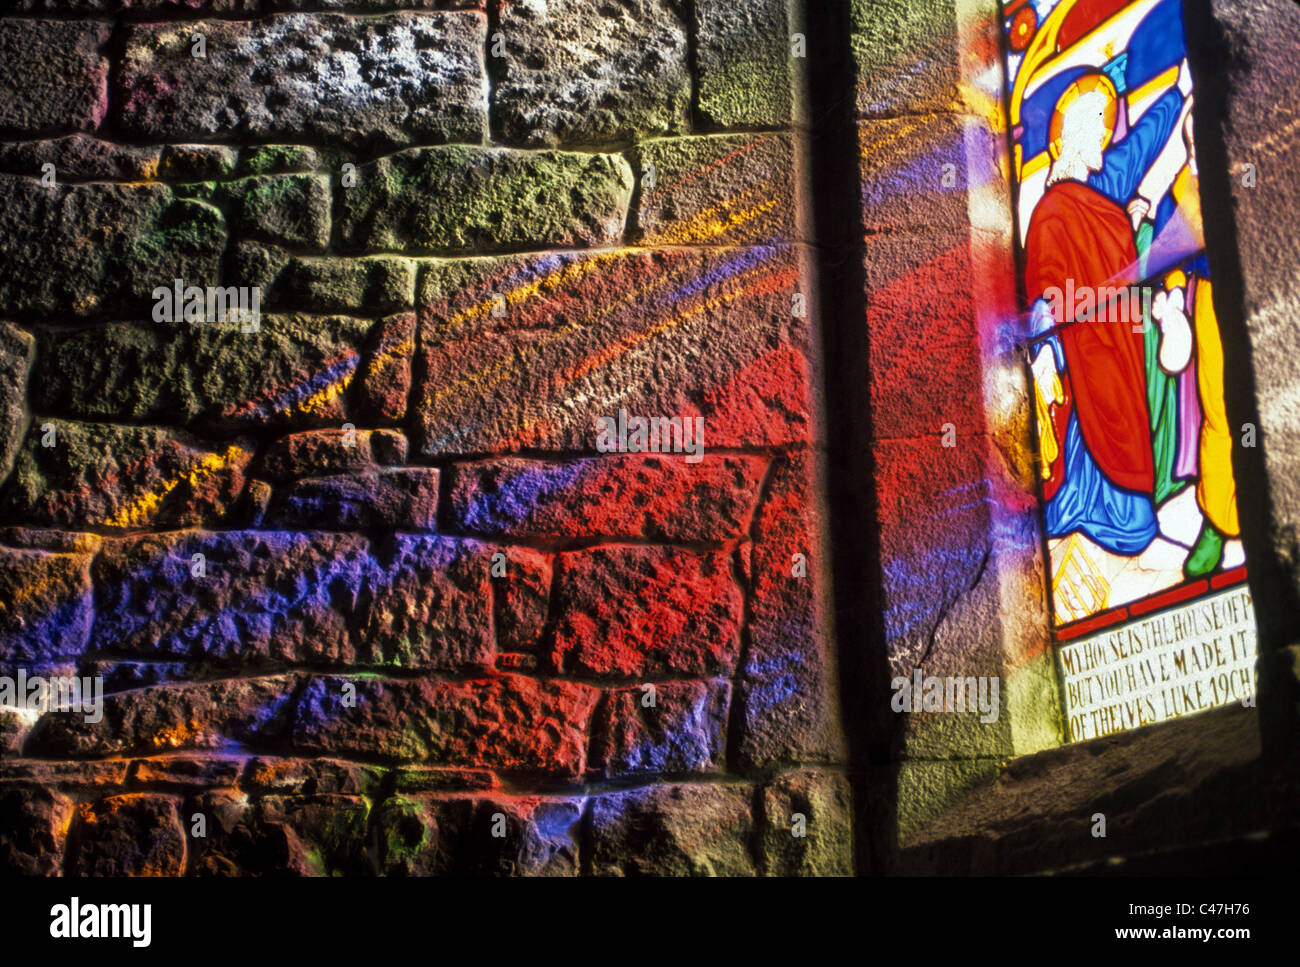 Bright Sunlight Refracted Through A Stained Glass Window Casts Colorful Patterns On The Plain Stone Wall Of An Old Church In Adare Ireland